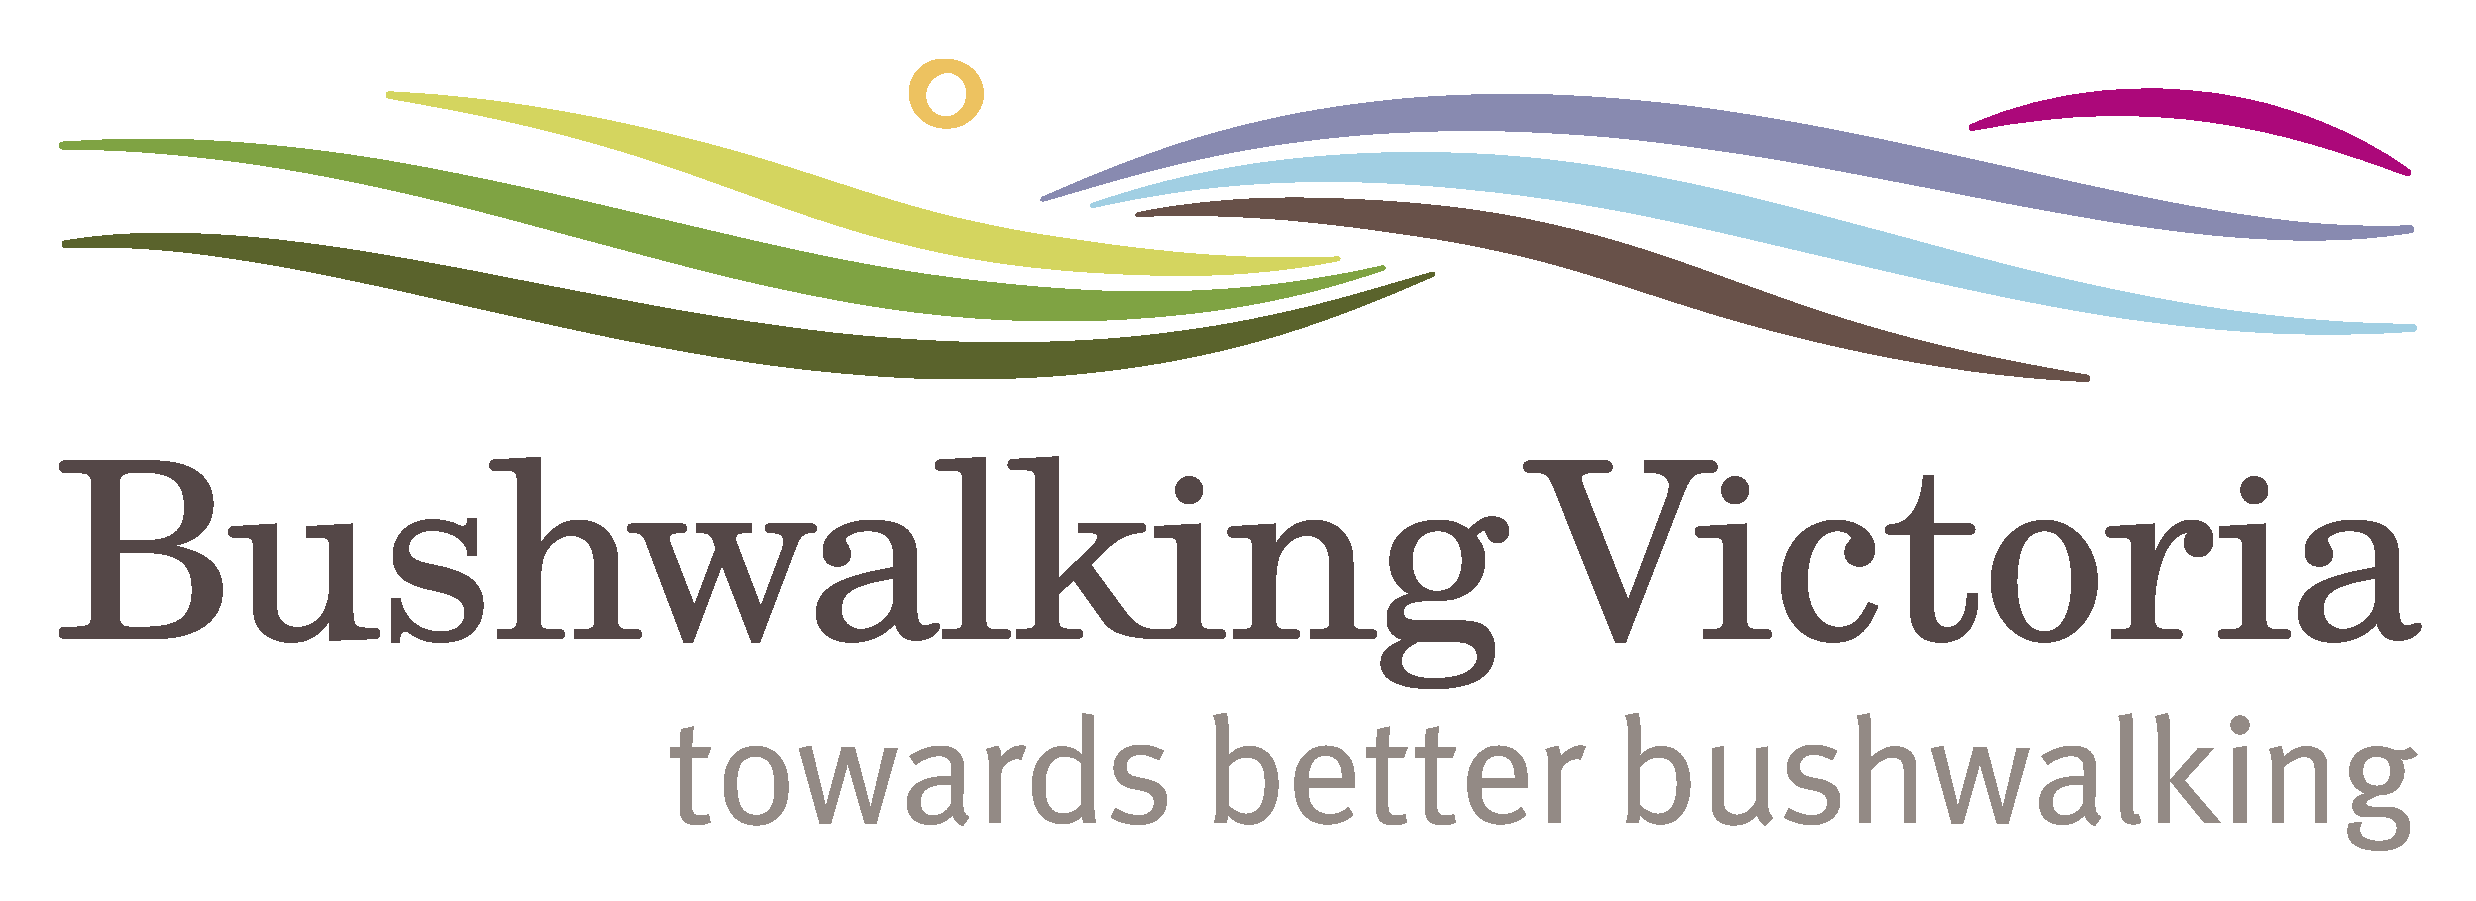 Bushwalking Vic logo with tagline 2 for websites